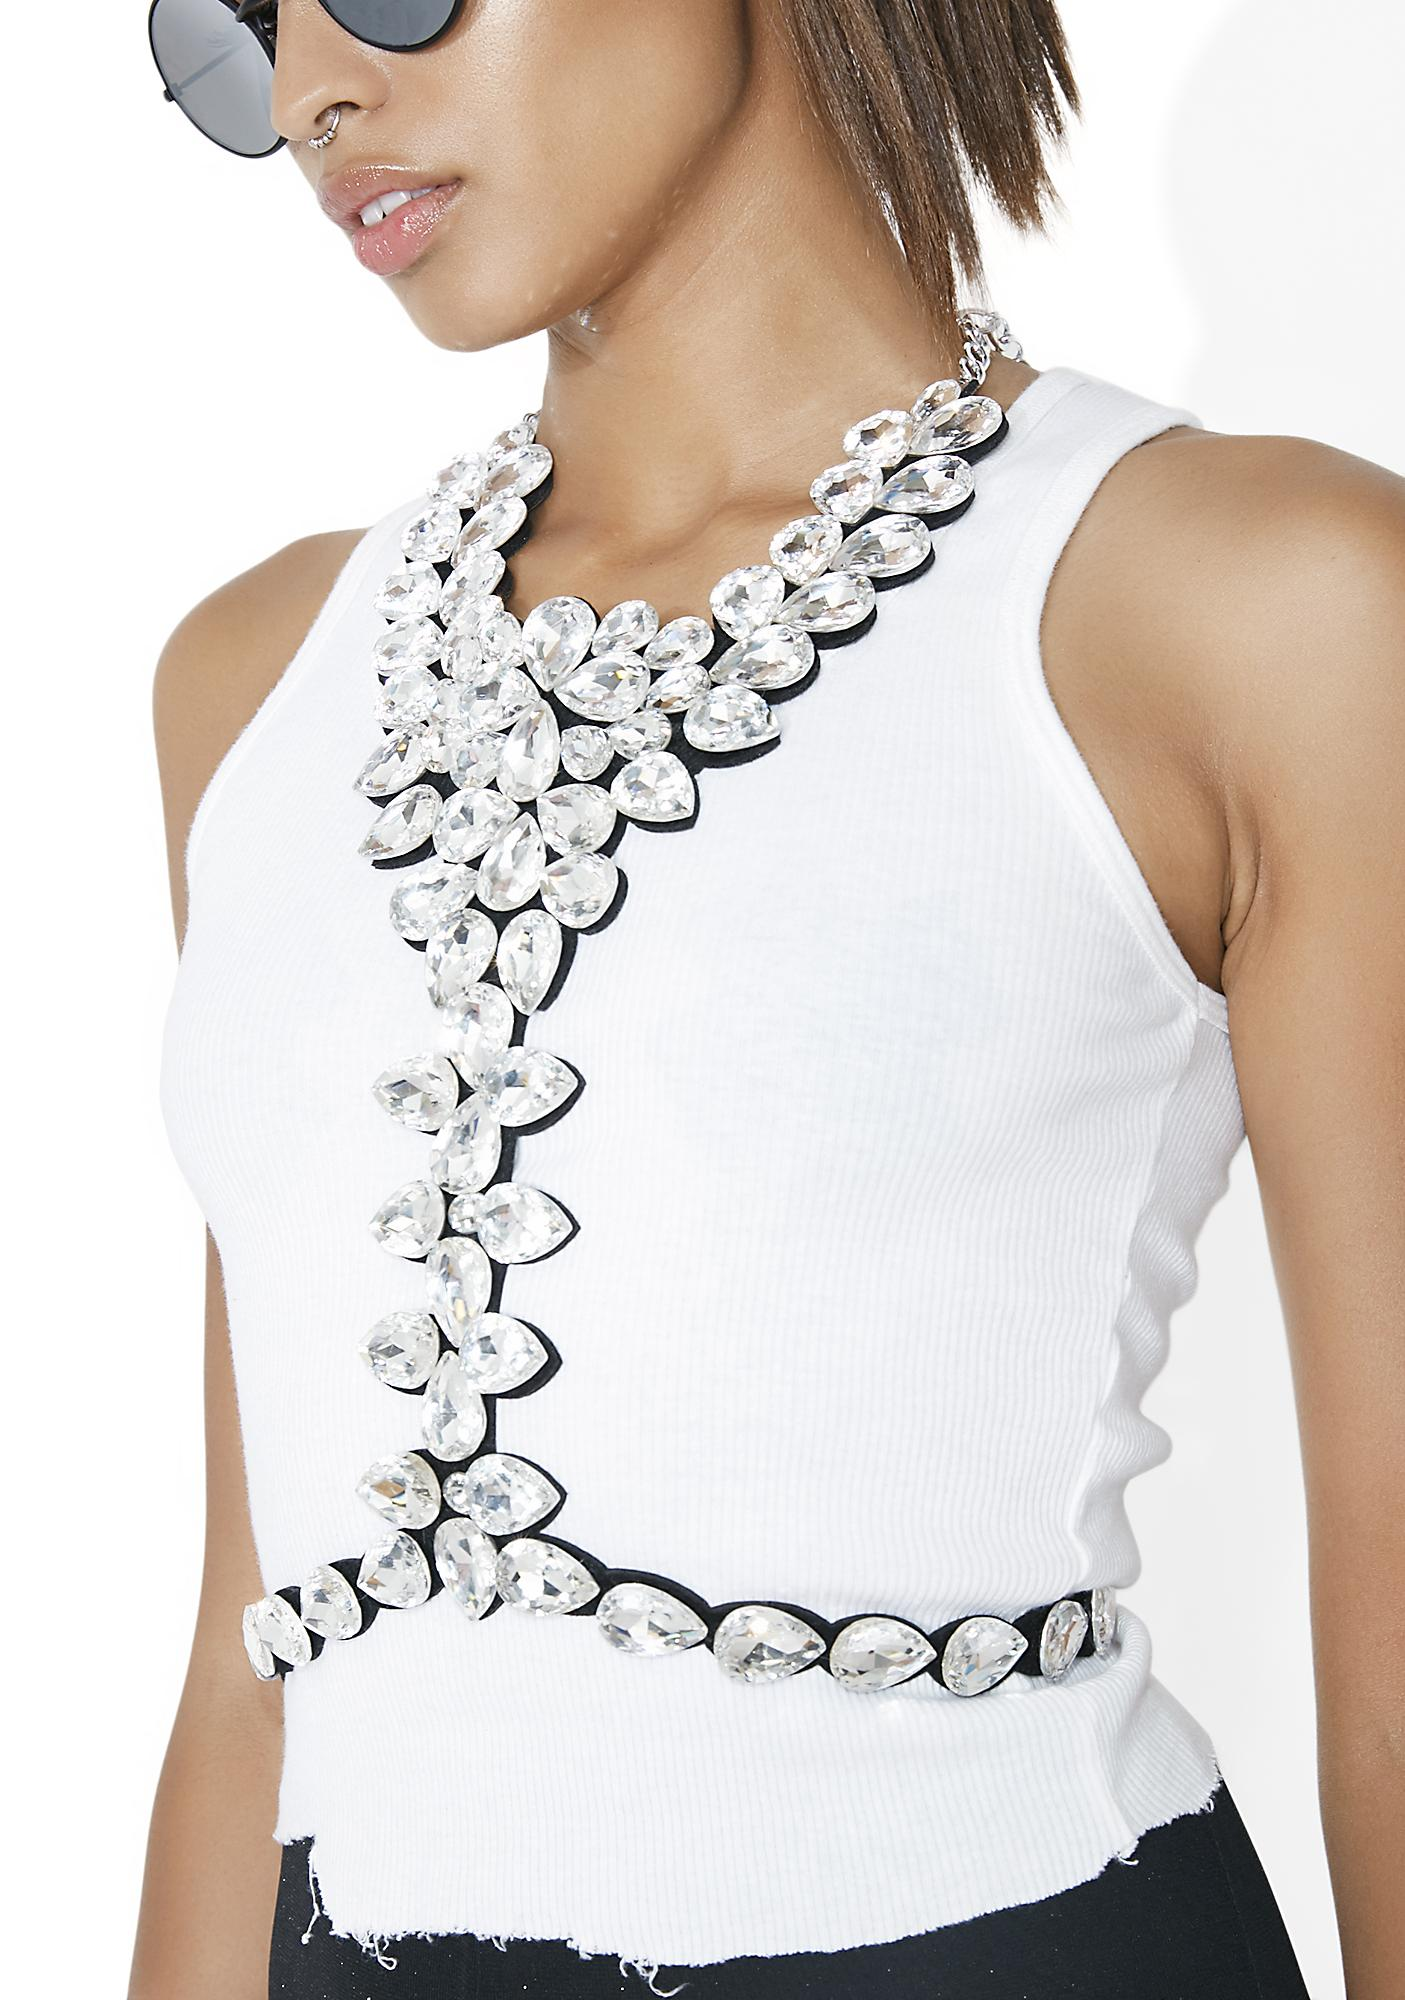 Cold As Ice Rhinestone Bodychain